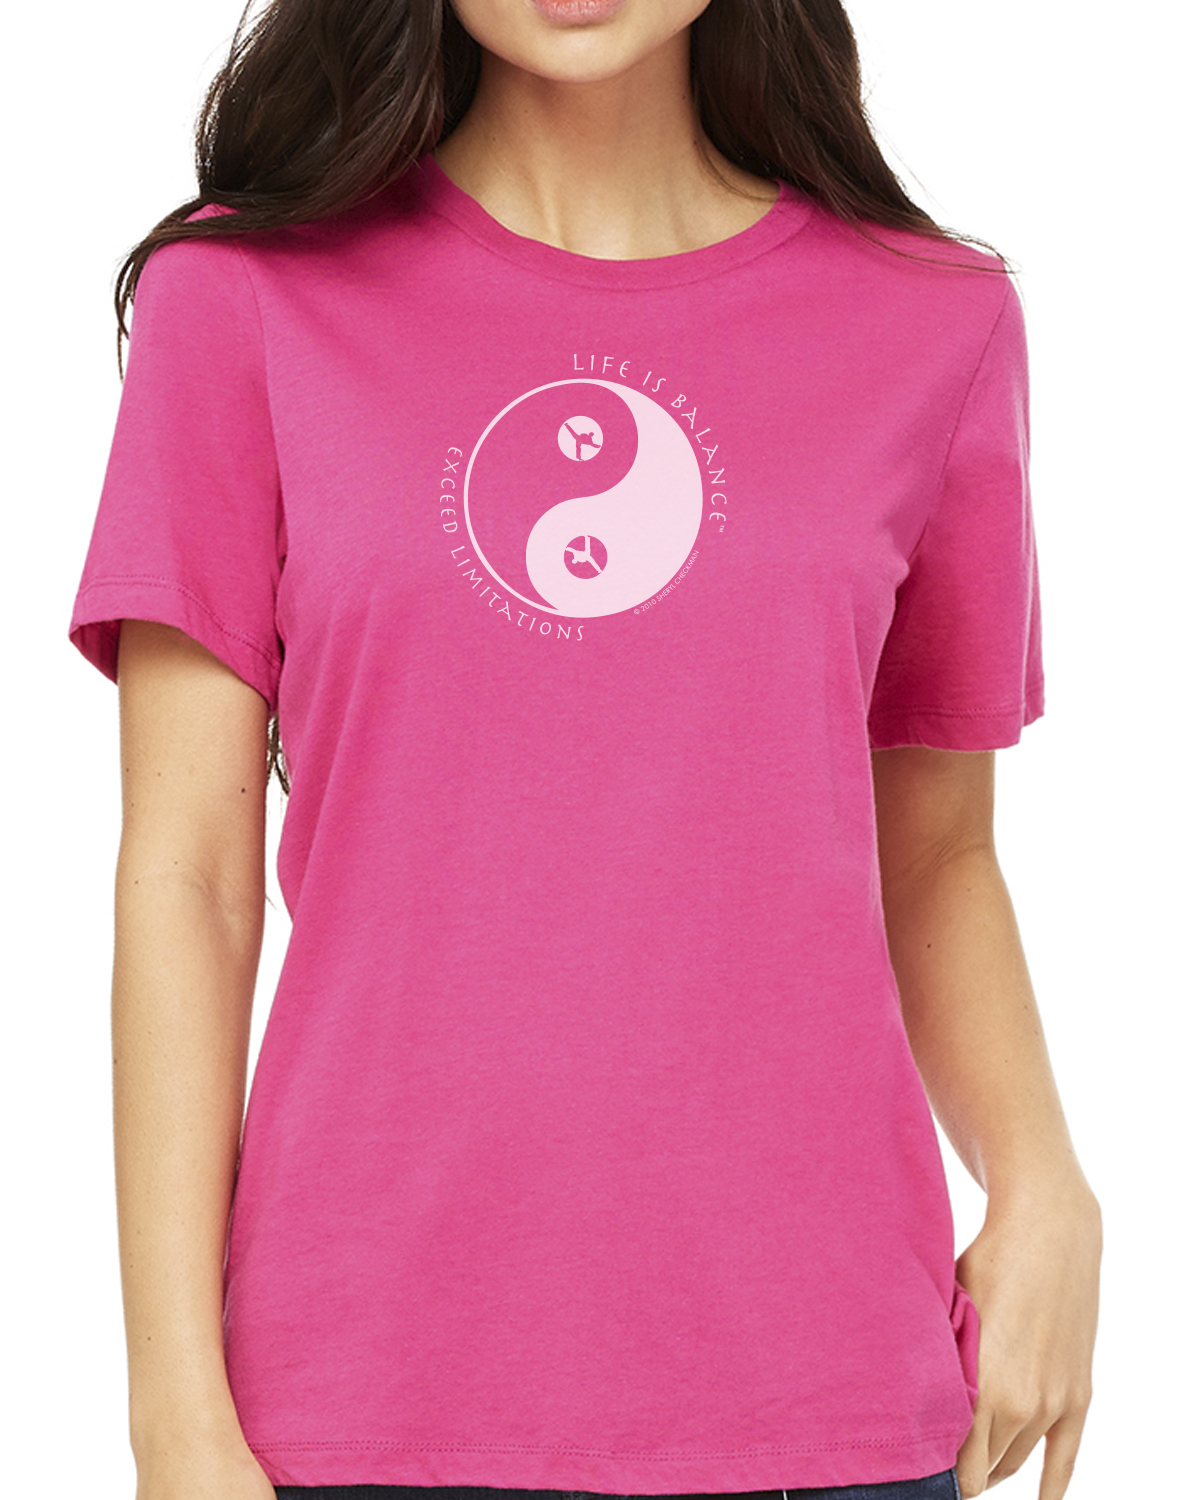 Women's short sleeve martial arts t-shirt (berry)